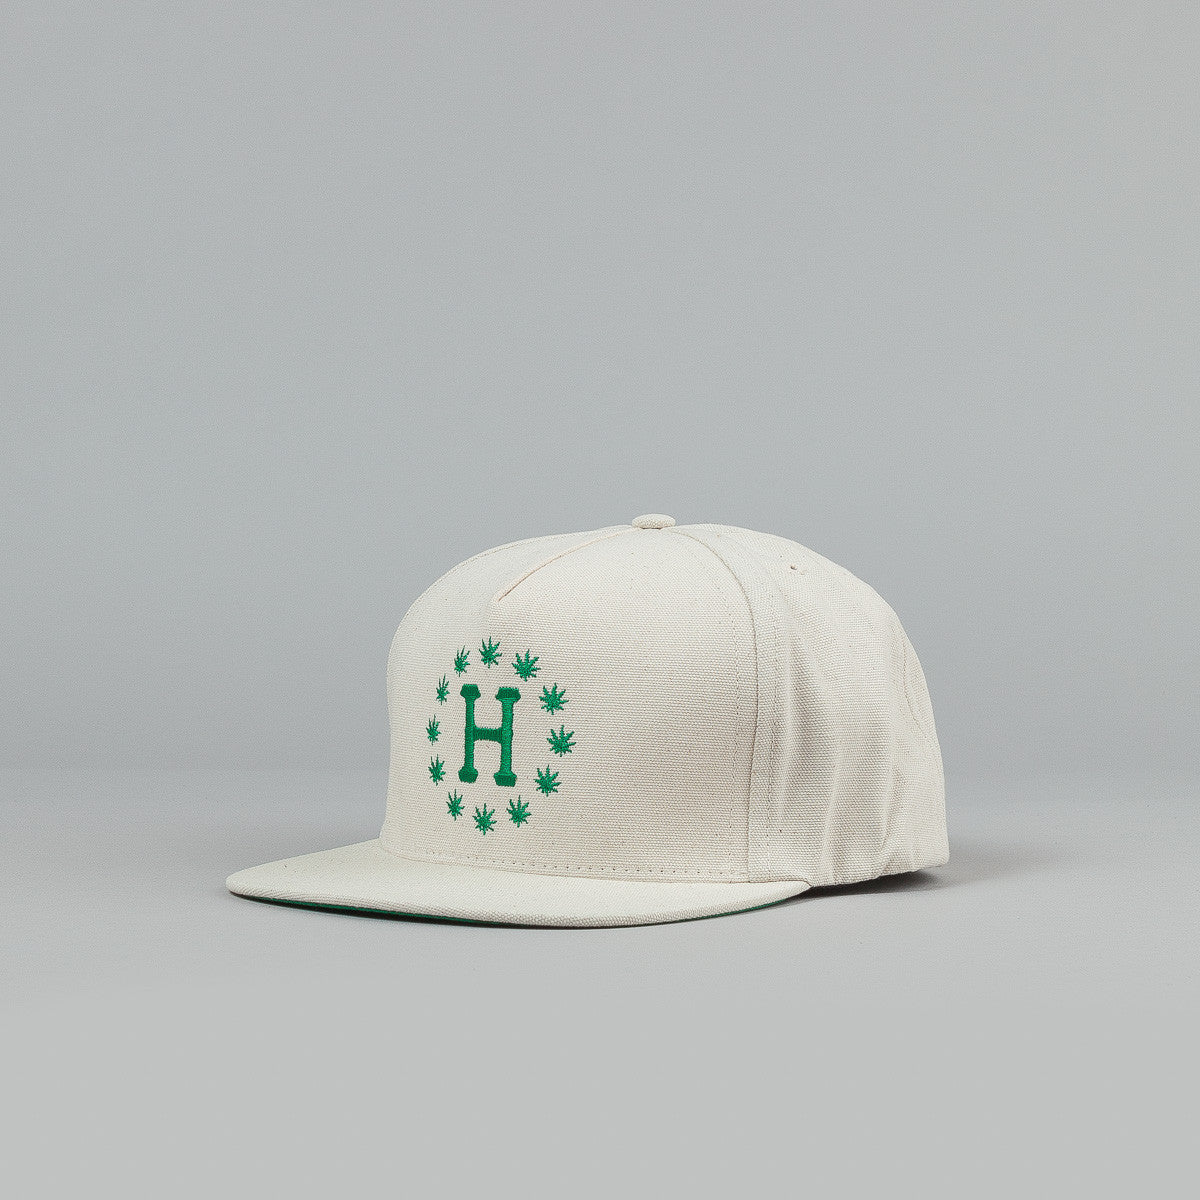 Huf X High Times Hemp Galaxy Snapback Cap